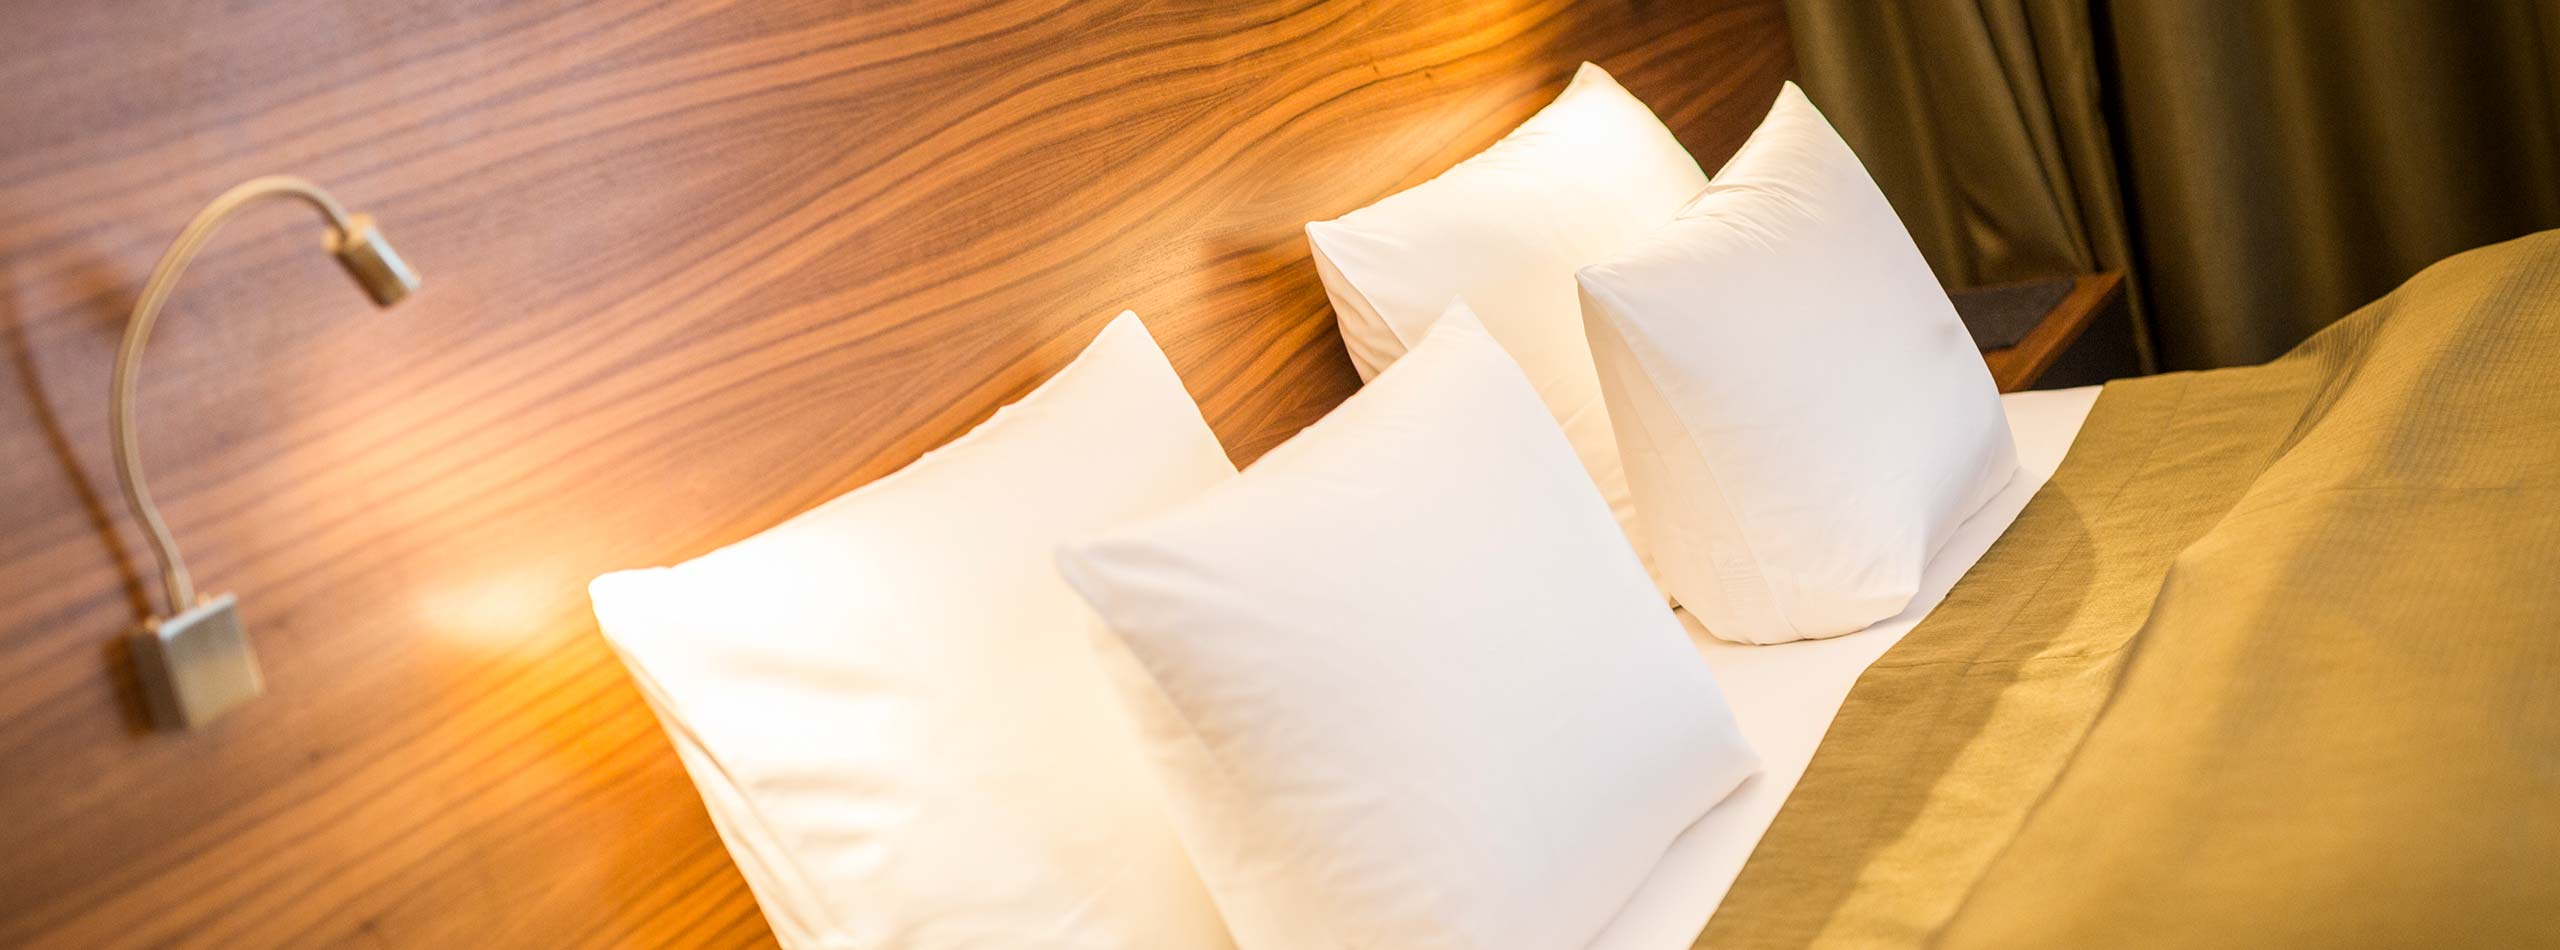 Rooms & suites 5-star luxury hotel Rosengarten Kirchberg Tyrol